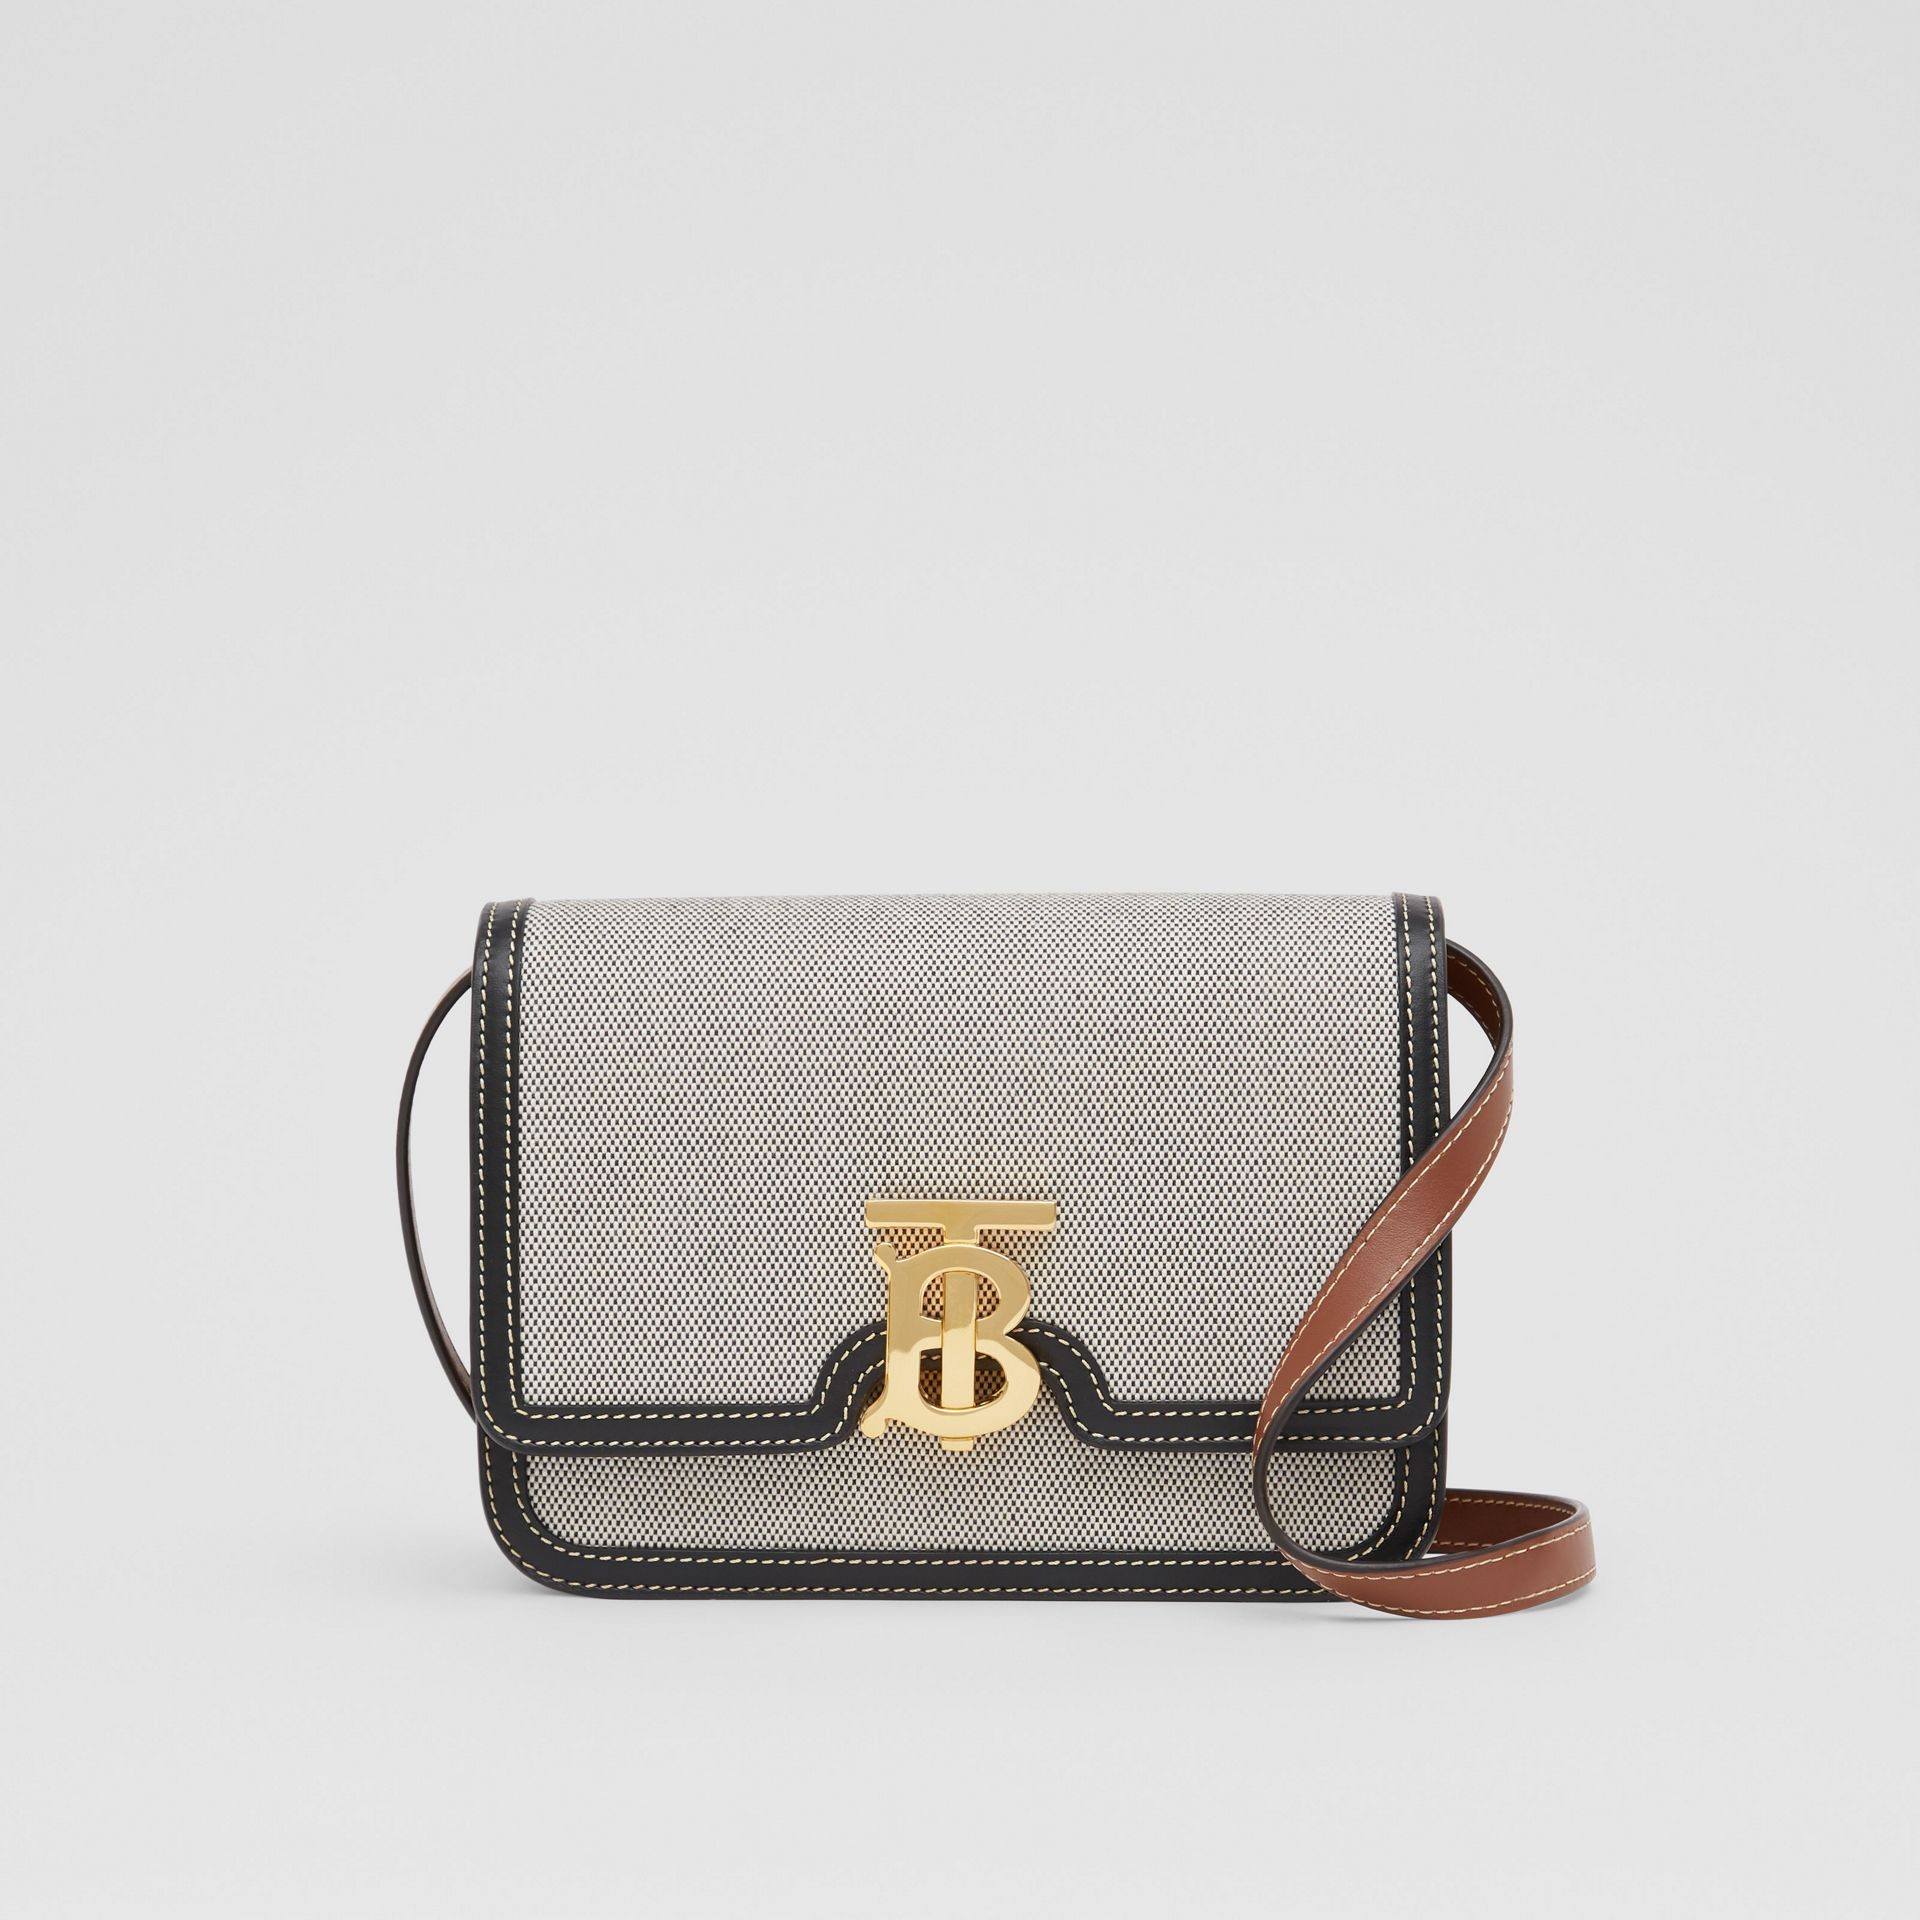 Small Tri-tone Canvas and Leather TB Bag in Black/tan - Women | Burberry United States - gallery image 0